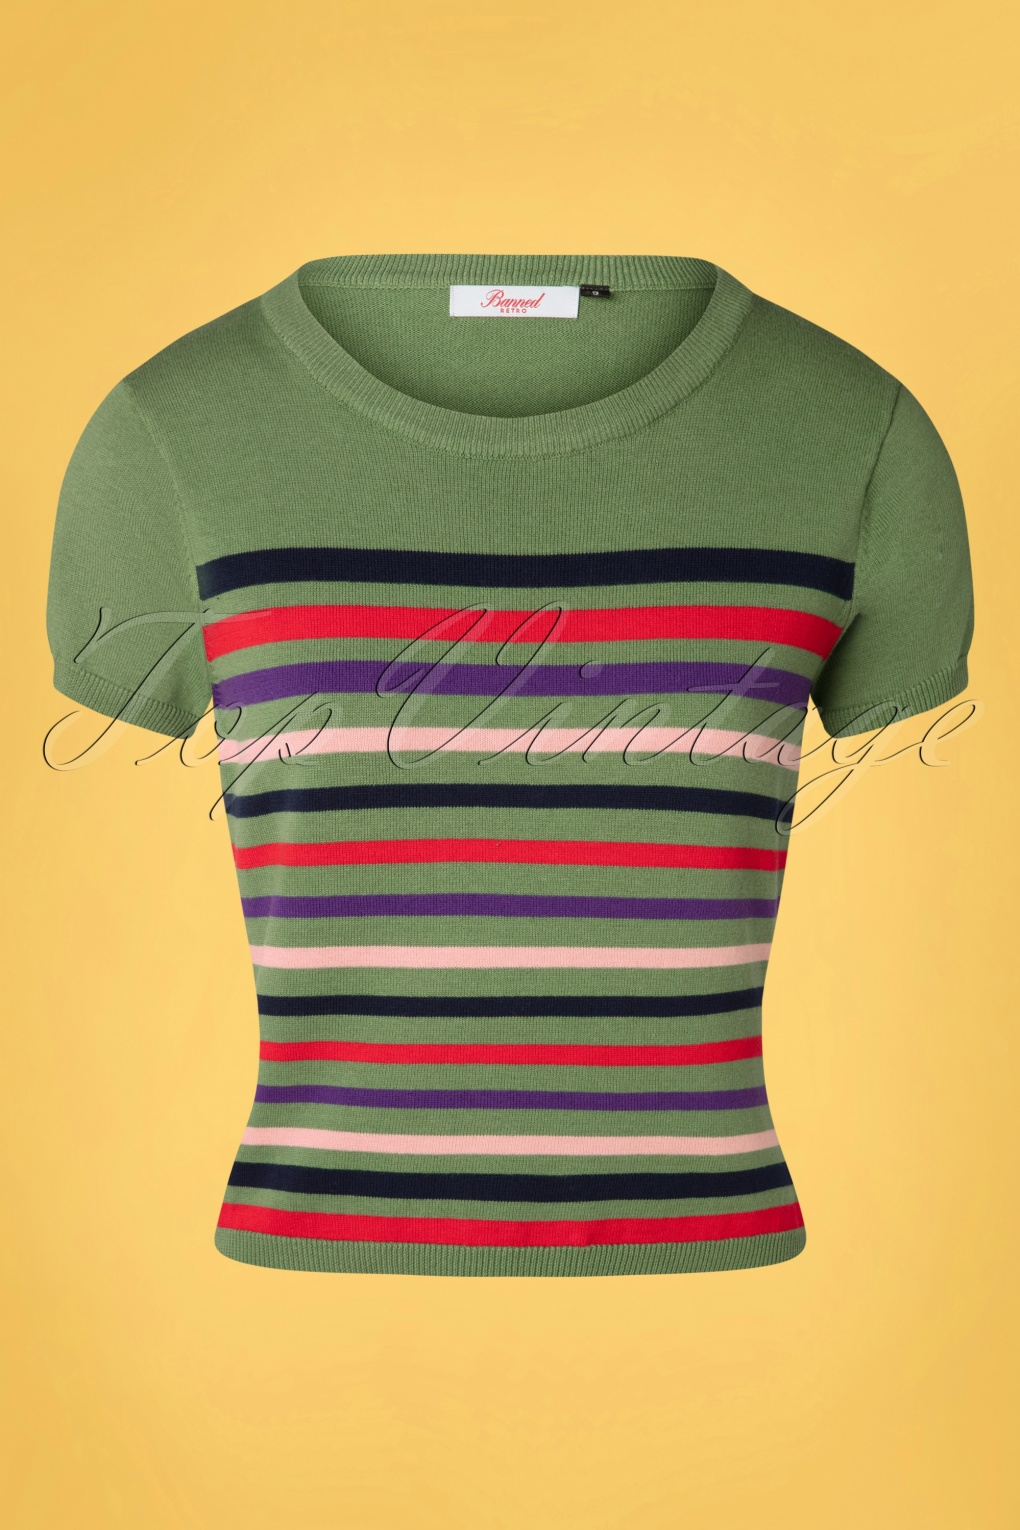 60s Fancy Dress and Quality Clothing 1960s UK 60s Memory Lane Stripes Top in Green £29.36 AT vintagedancer.com